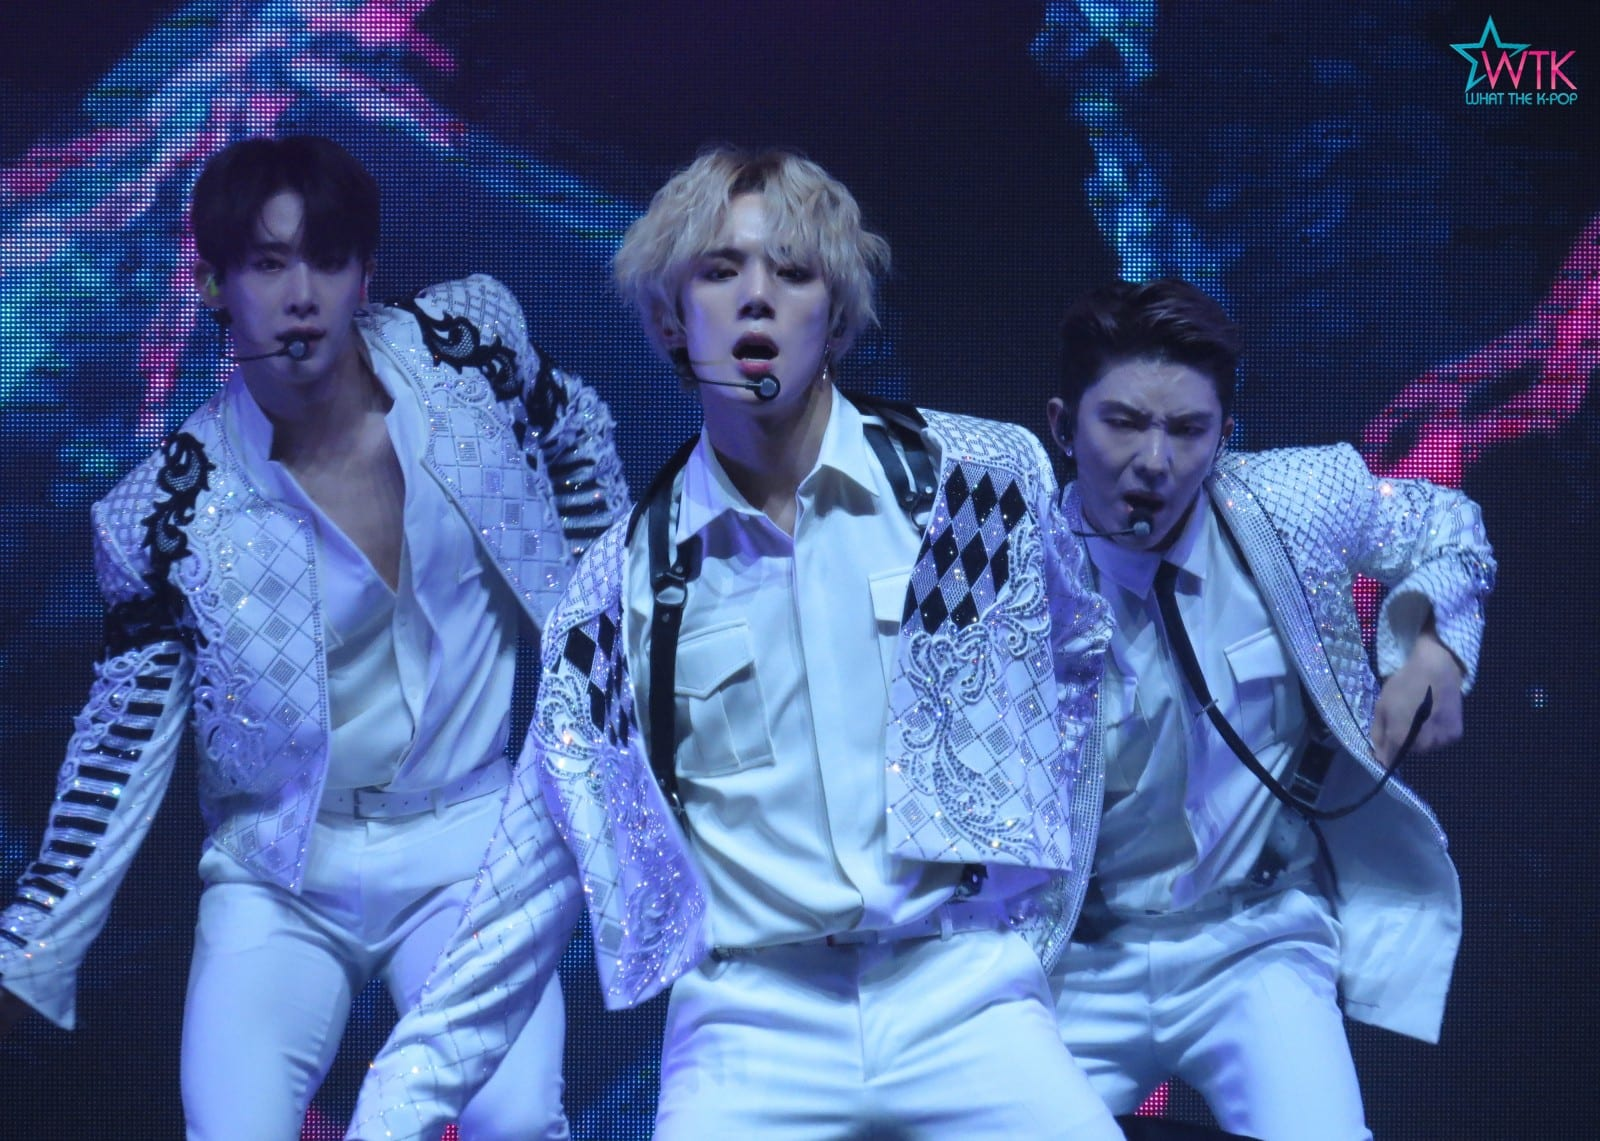 WTK GALLERY: MONSTA X Rocks The Stage In Recent U.S. Tour